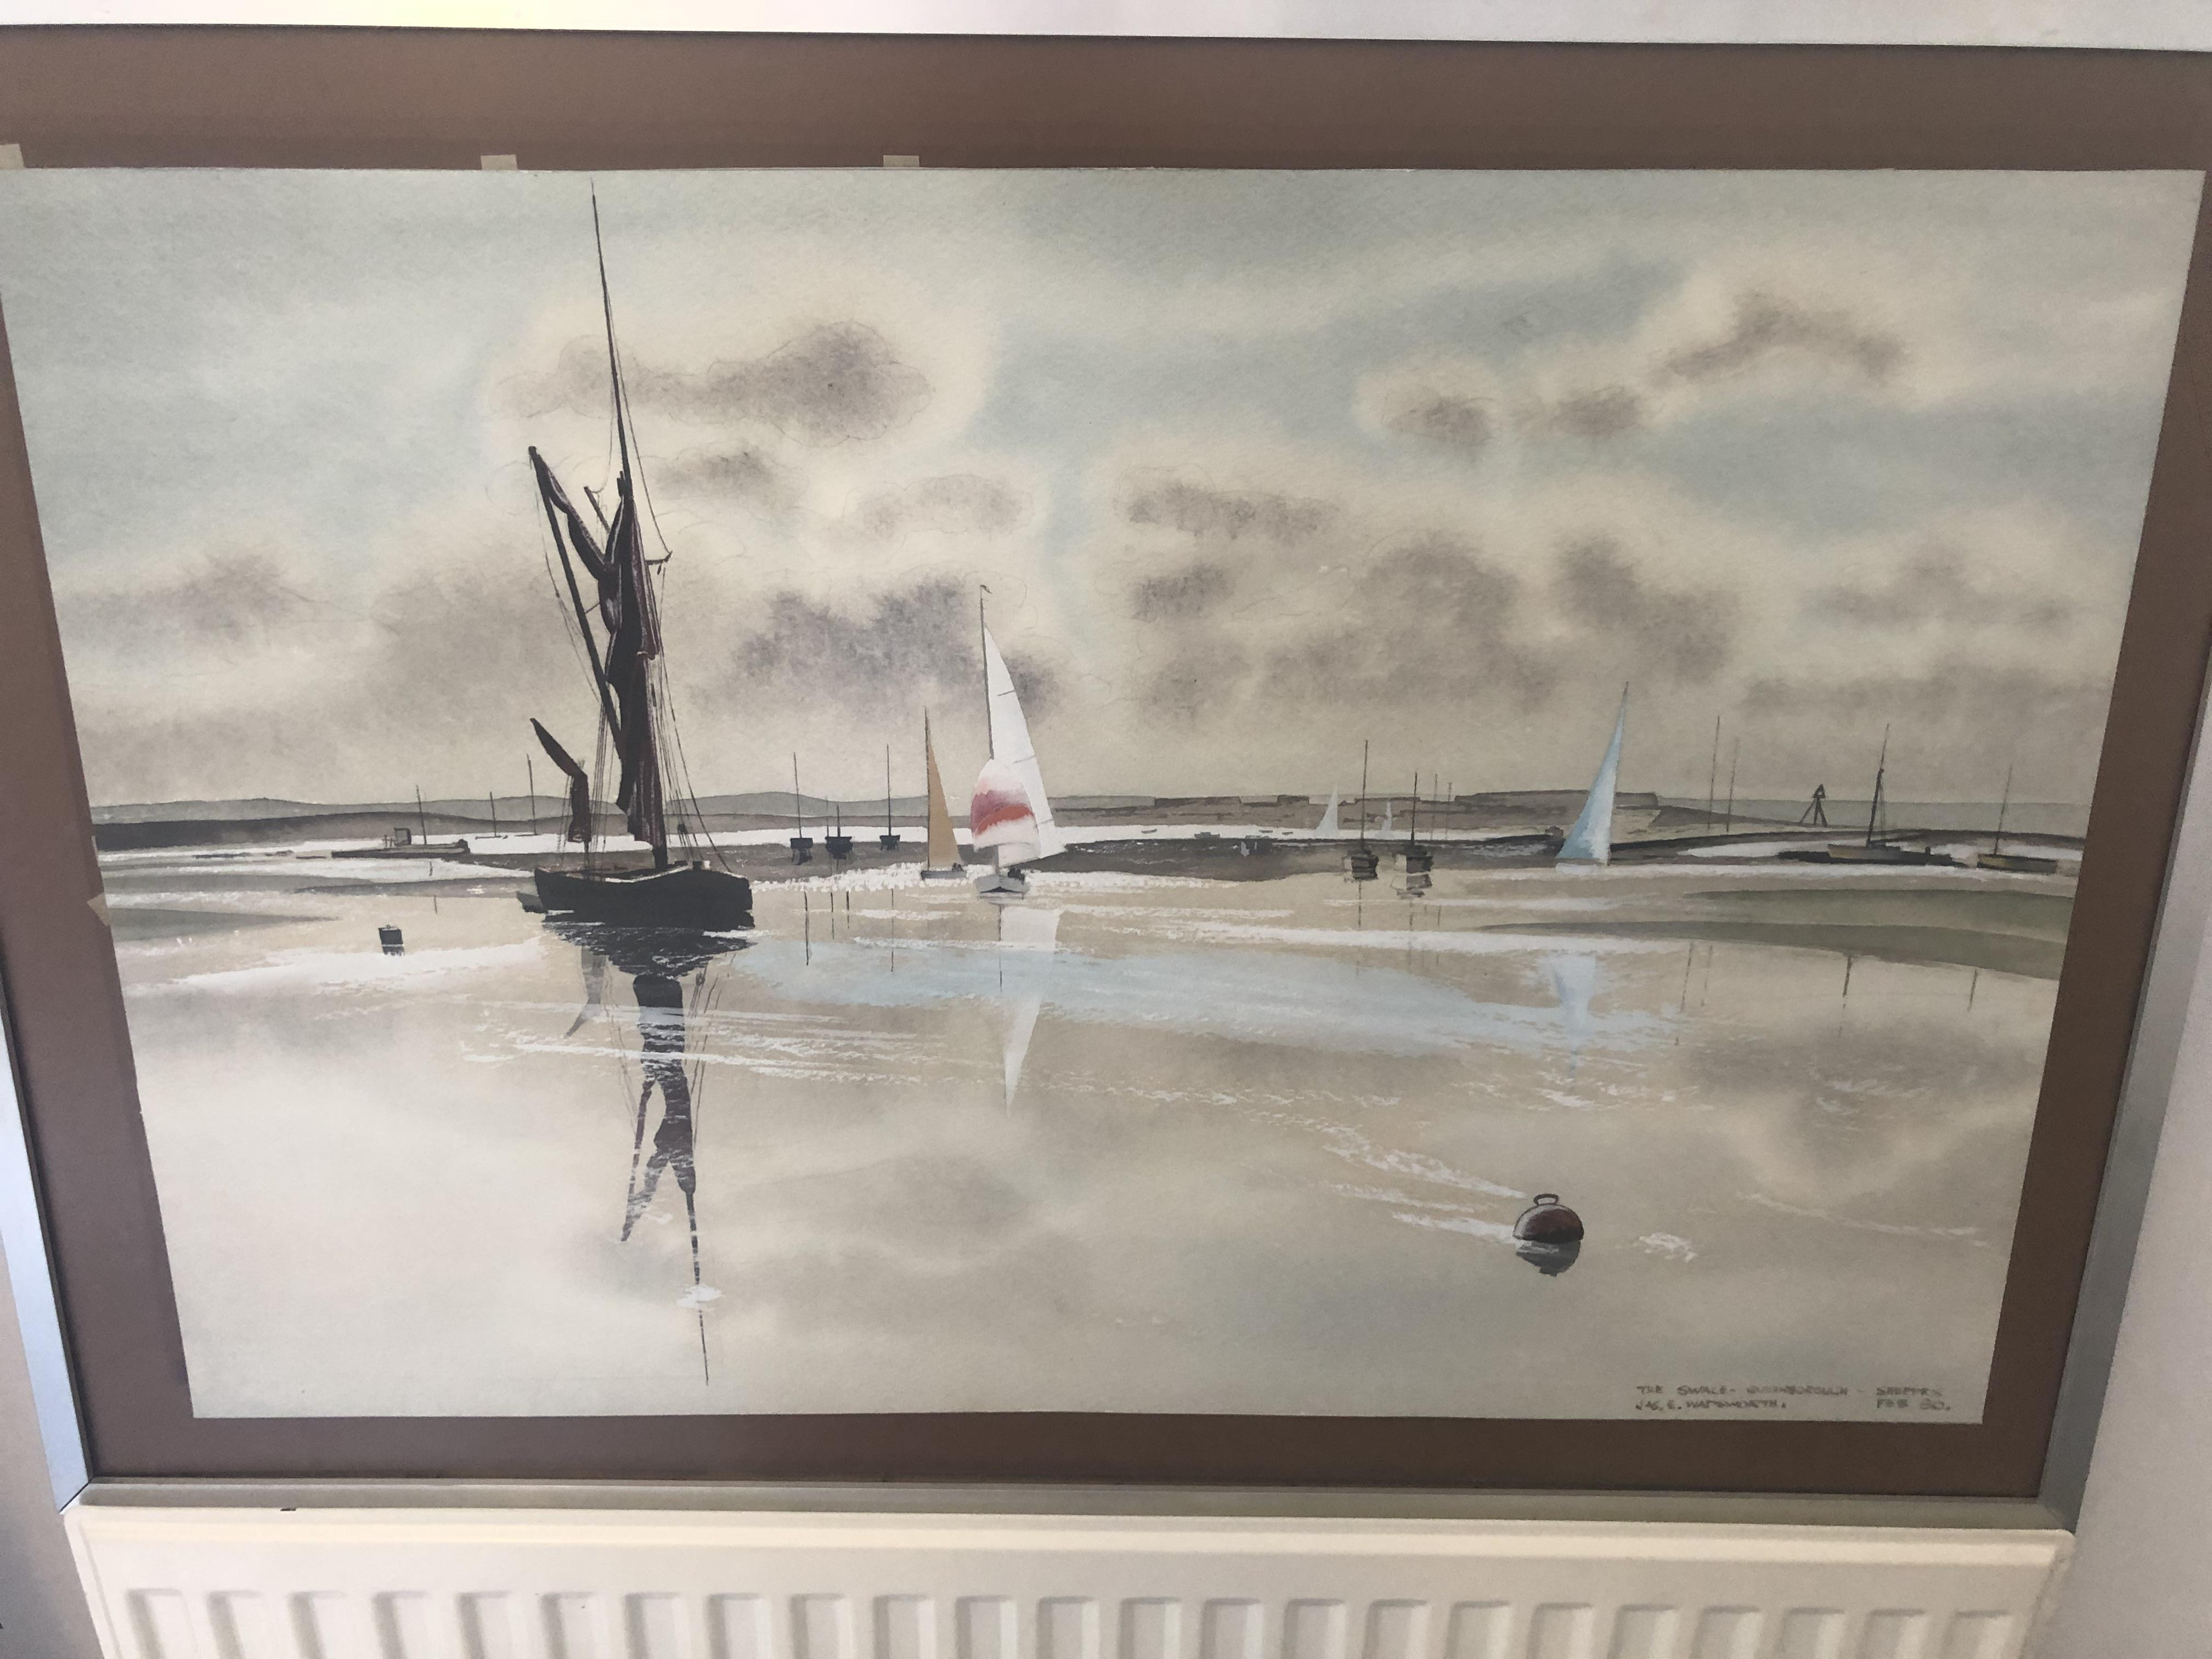 Lot 11 - Original Painting by Jas.E.Wadsworth, The Swale 1980.